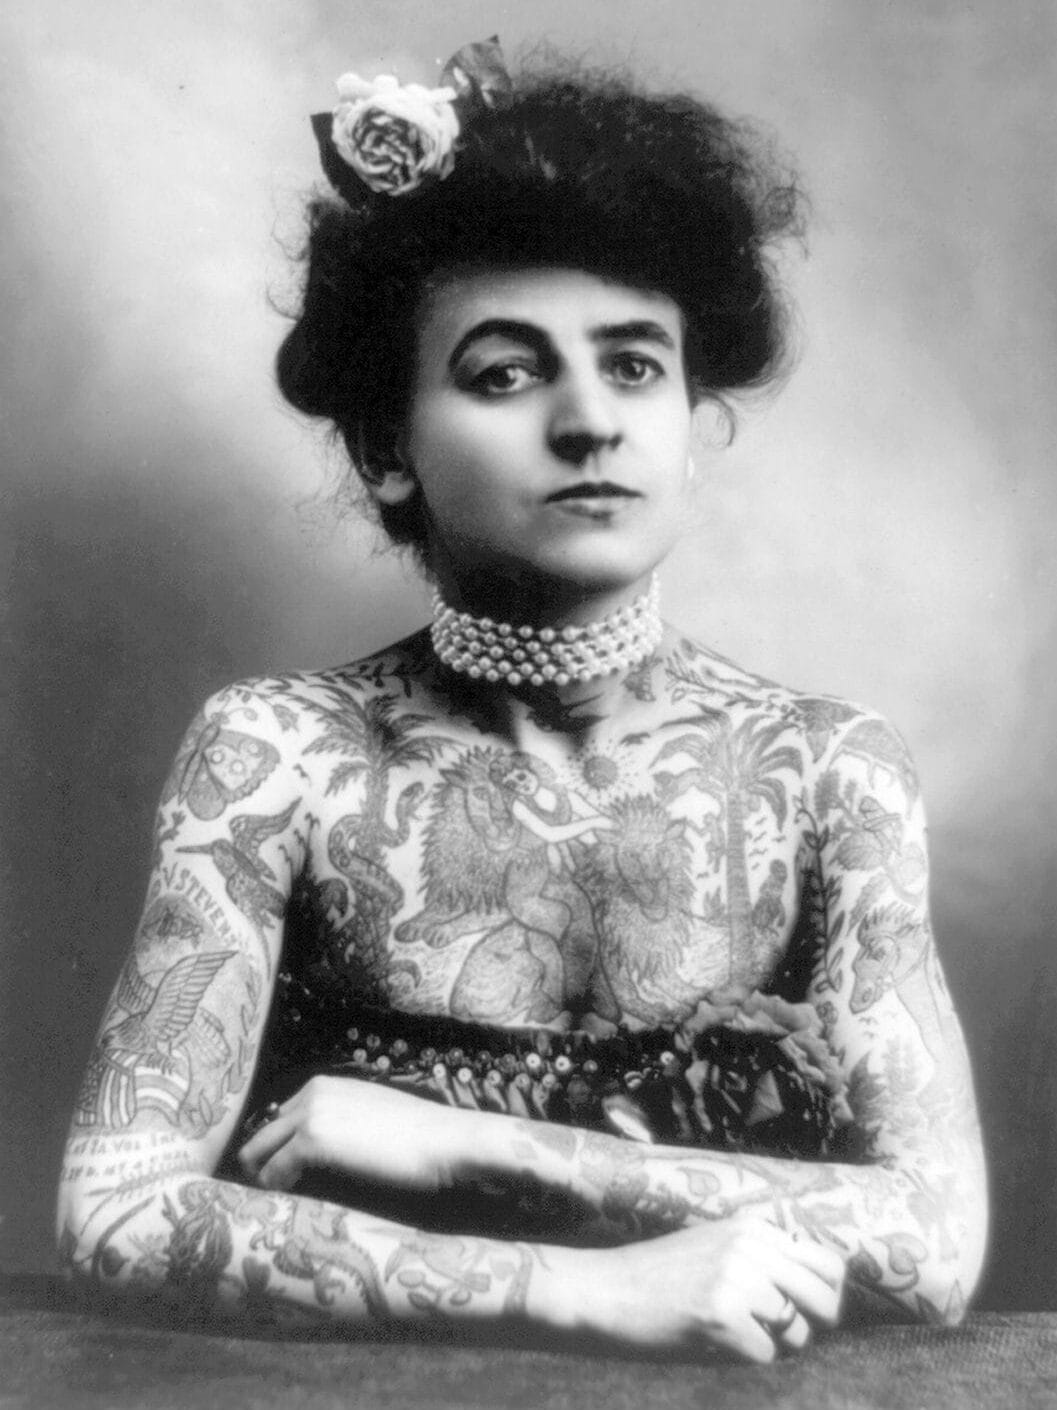 A middle-aged white woman is fully tattooed from her neck to her wrists. She poses with her arms crossed and looks at the camera defiantely.